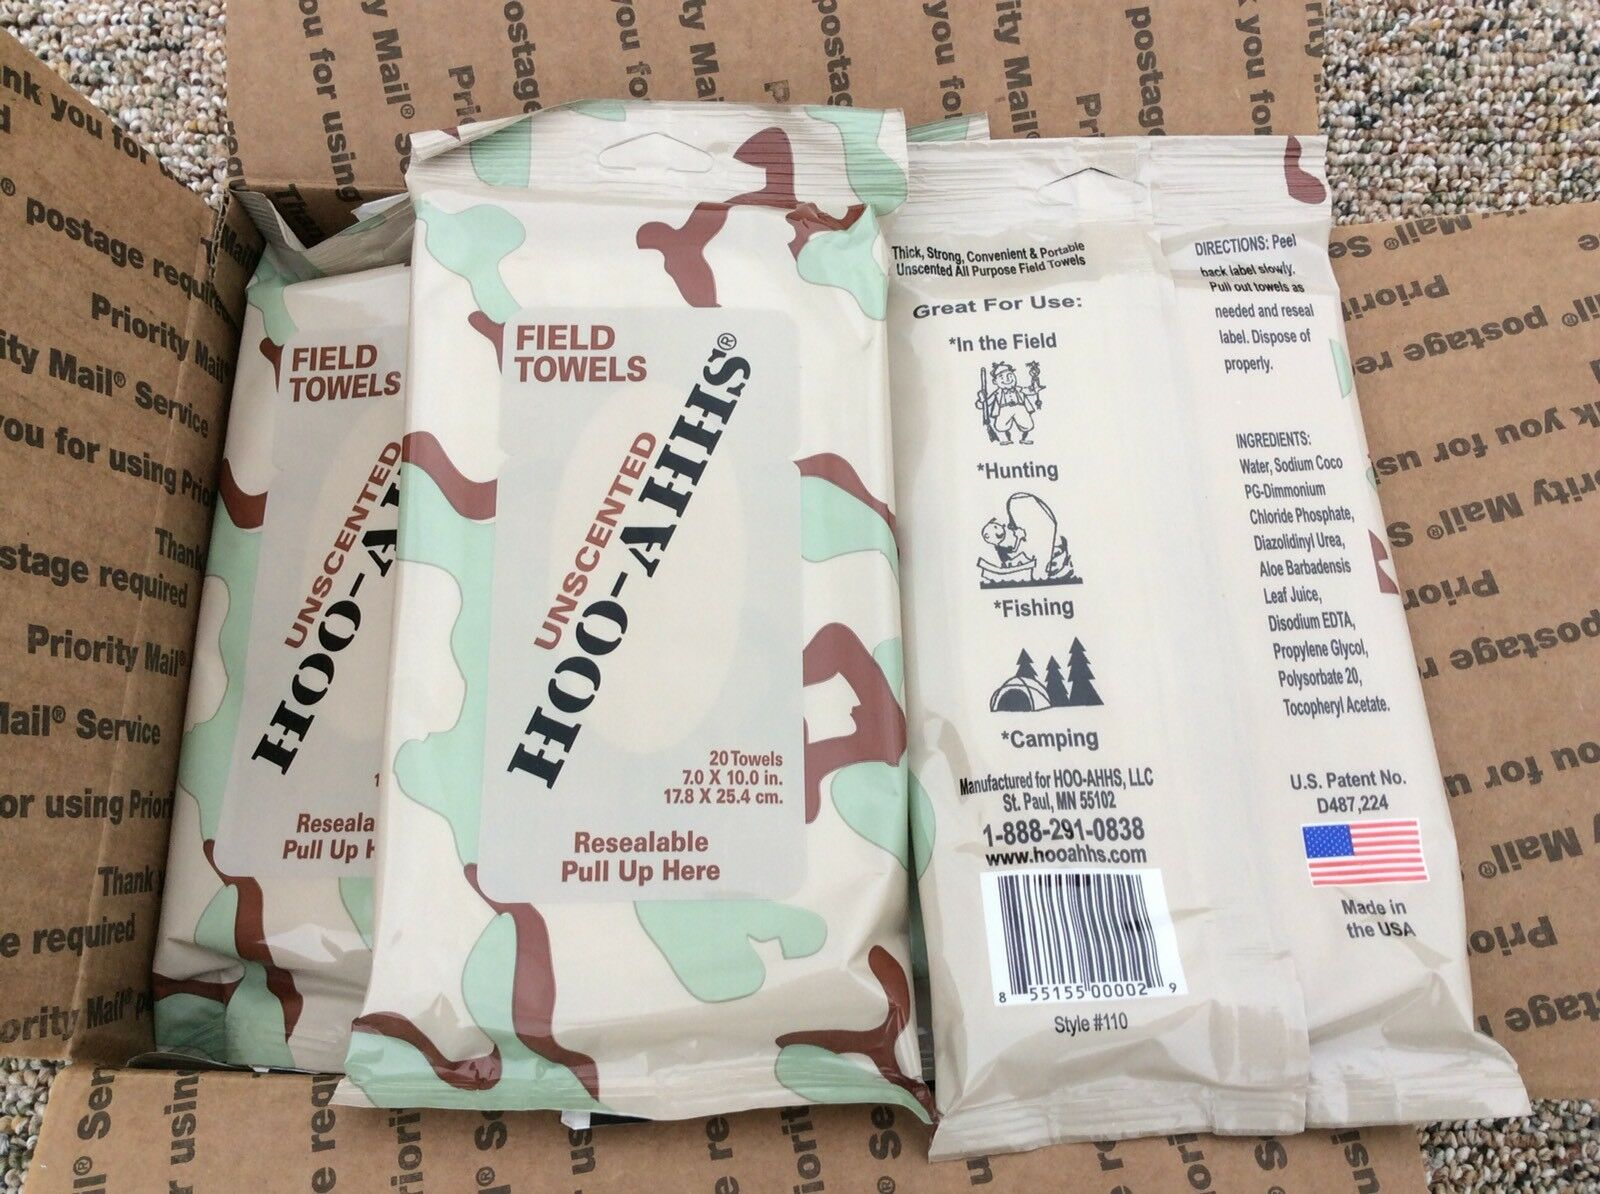 (20pk) Hoo-Ahhs Unscented Field Wipes -Towels-Hunting-Fishing- Military Tested